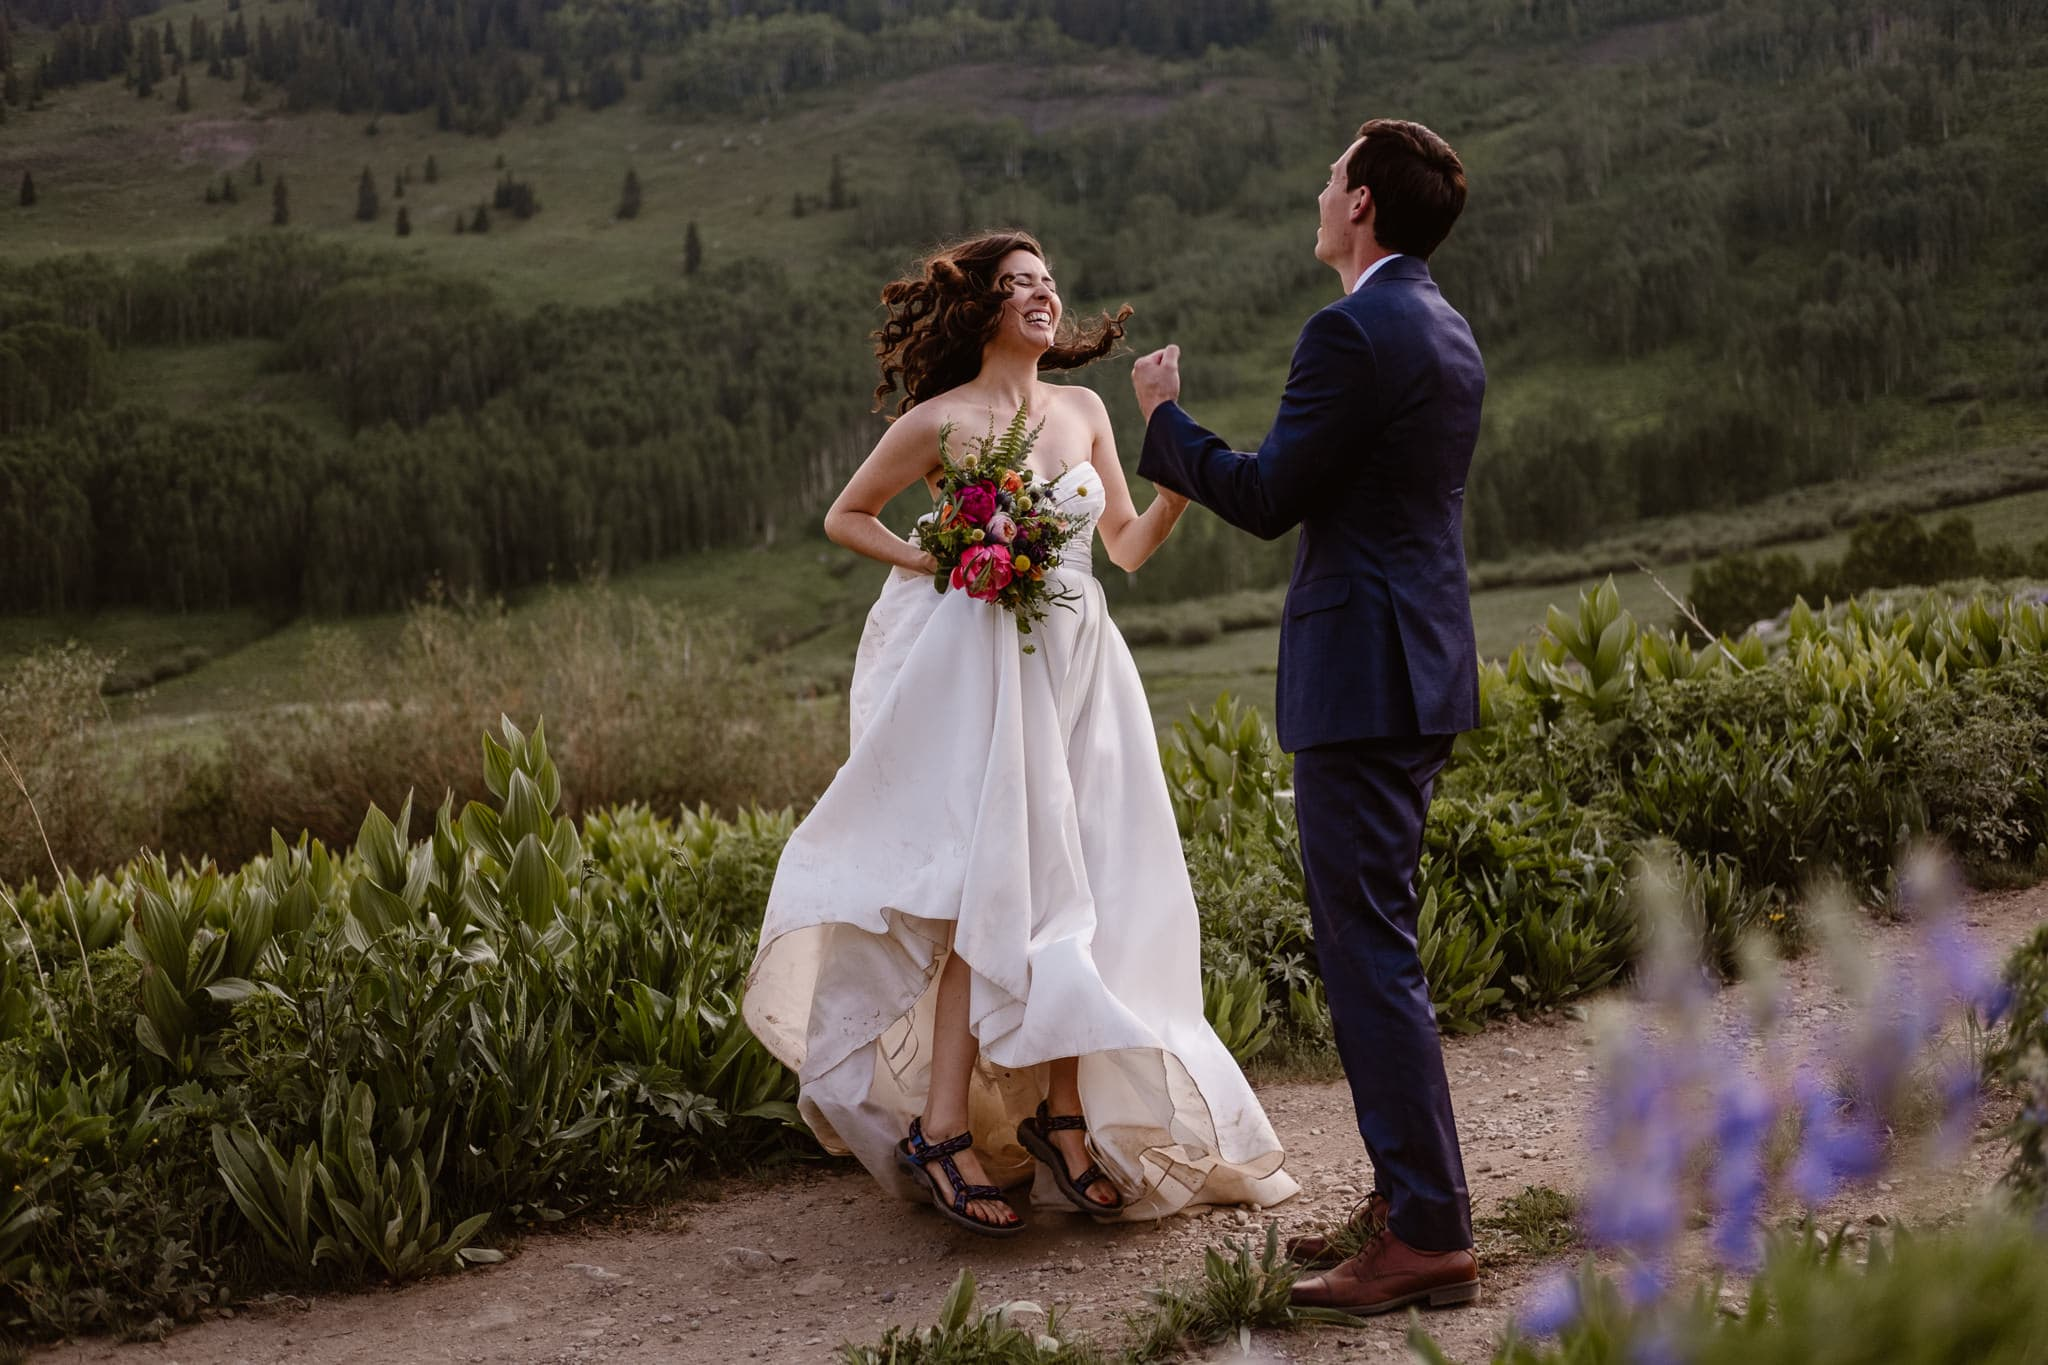 Crested Butte elopement photographer, Colorado adventure wedding photographer, bride jumping with excitement